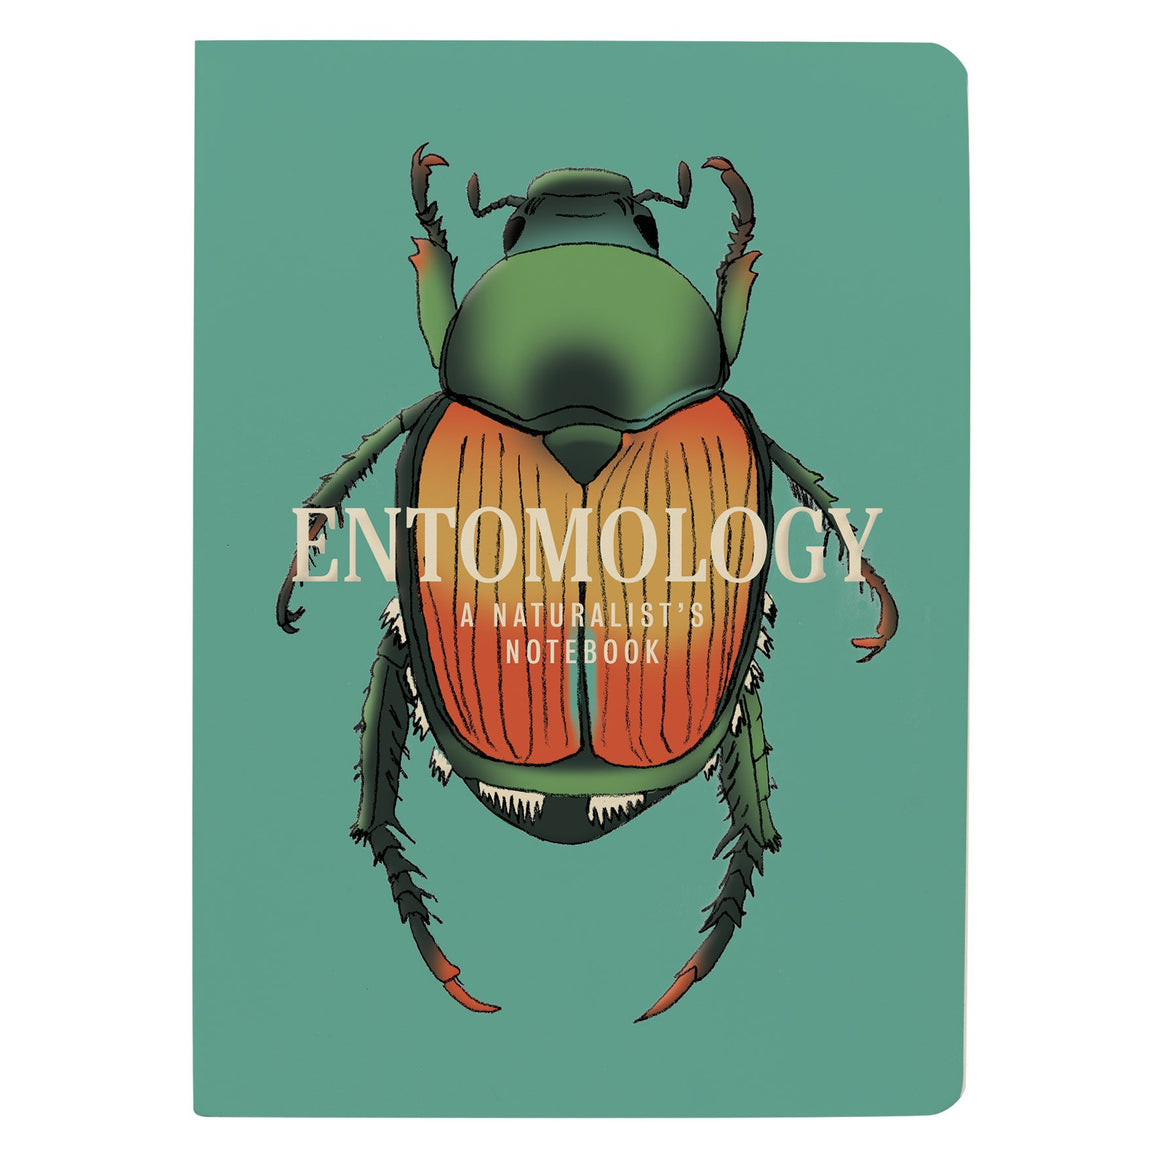 Entomology A Naturalist's Notebook